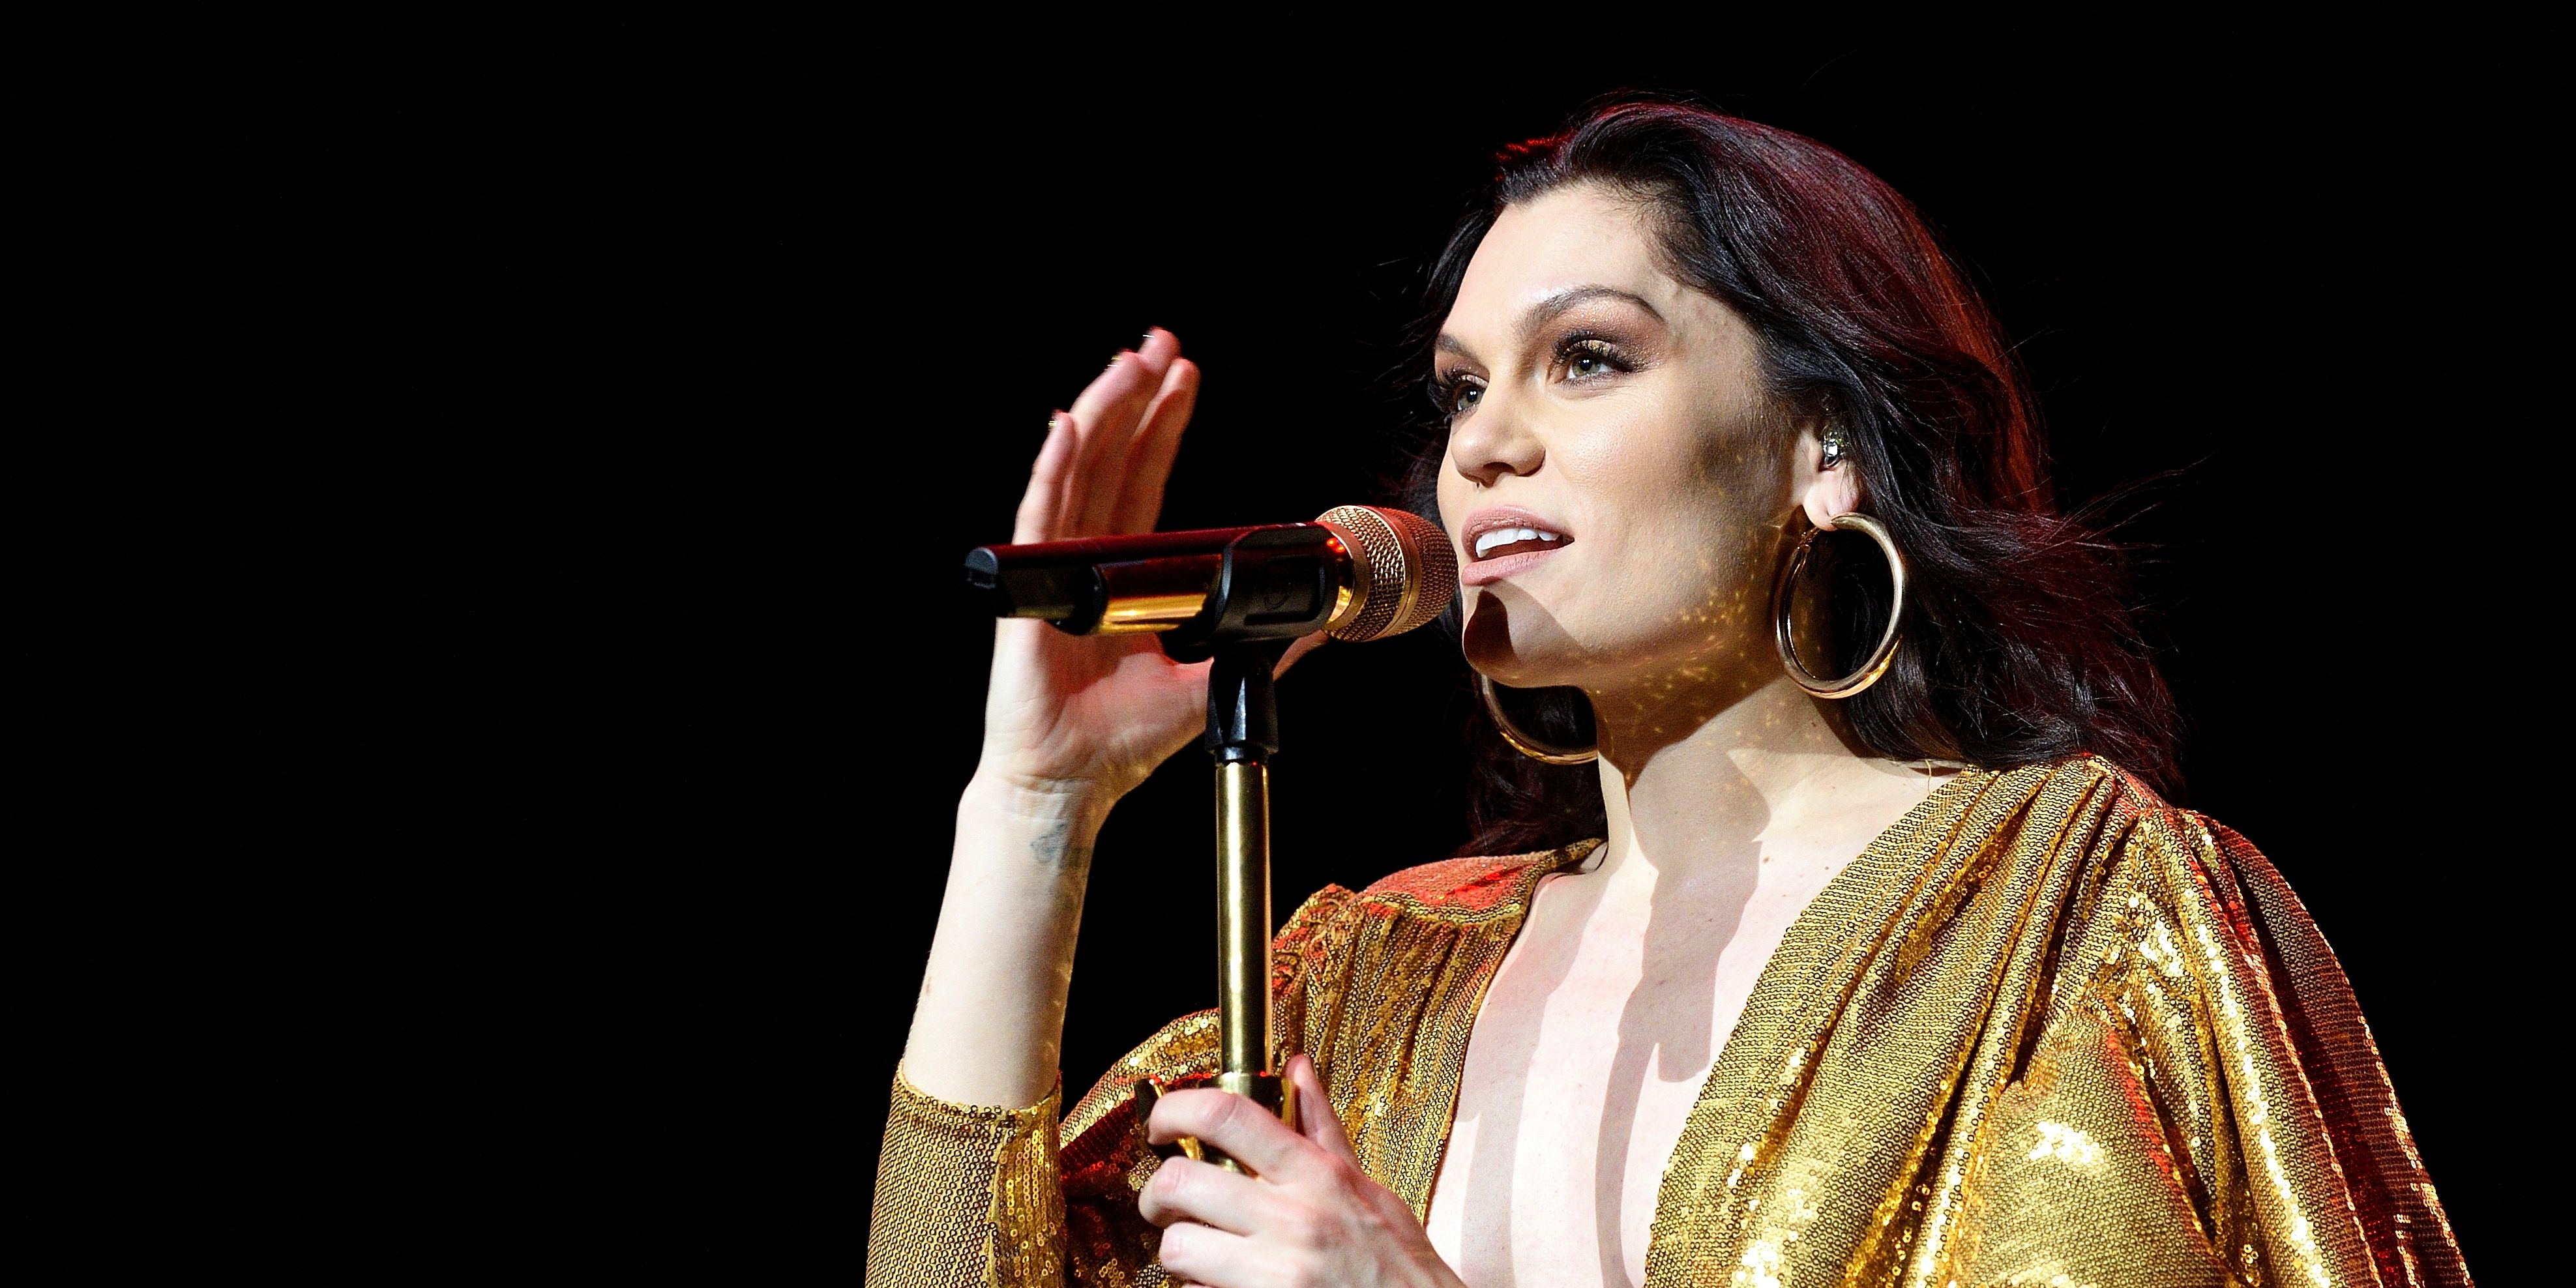 Jessie J Performs At The Royal Albert Hall